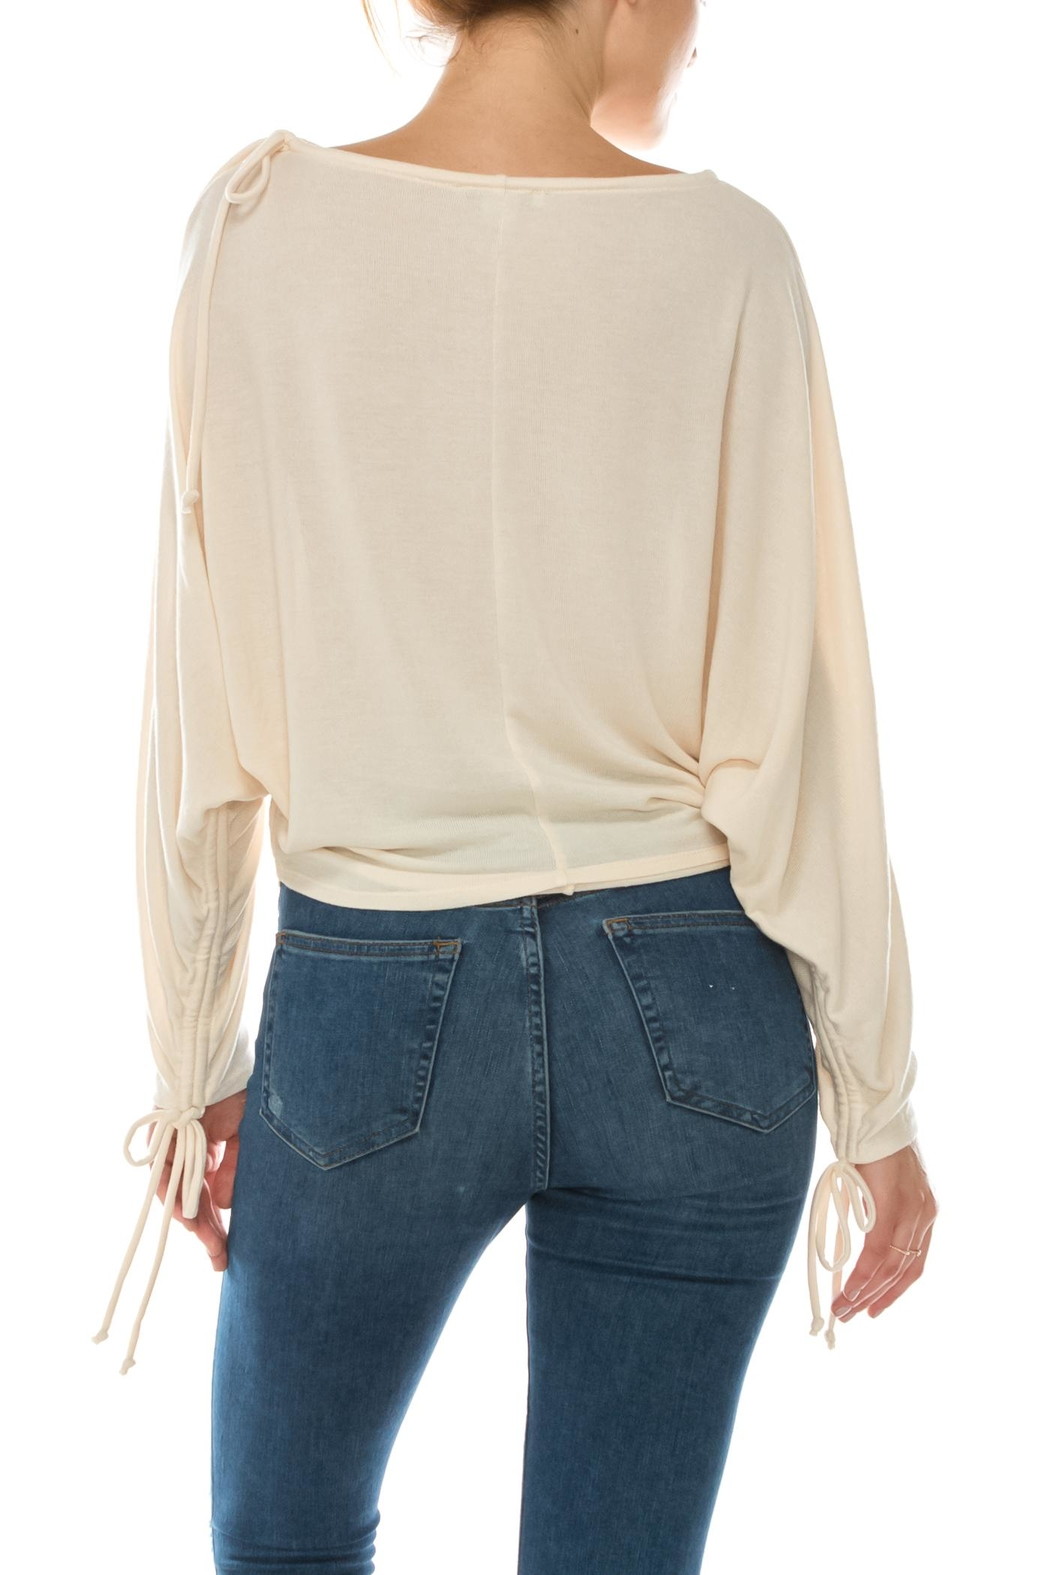 Favlux Tie Sleeve Top - Side Cropped Image